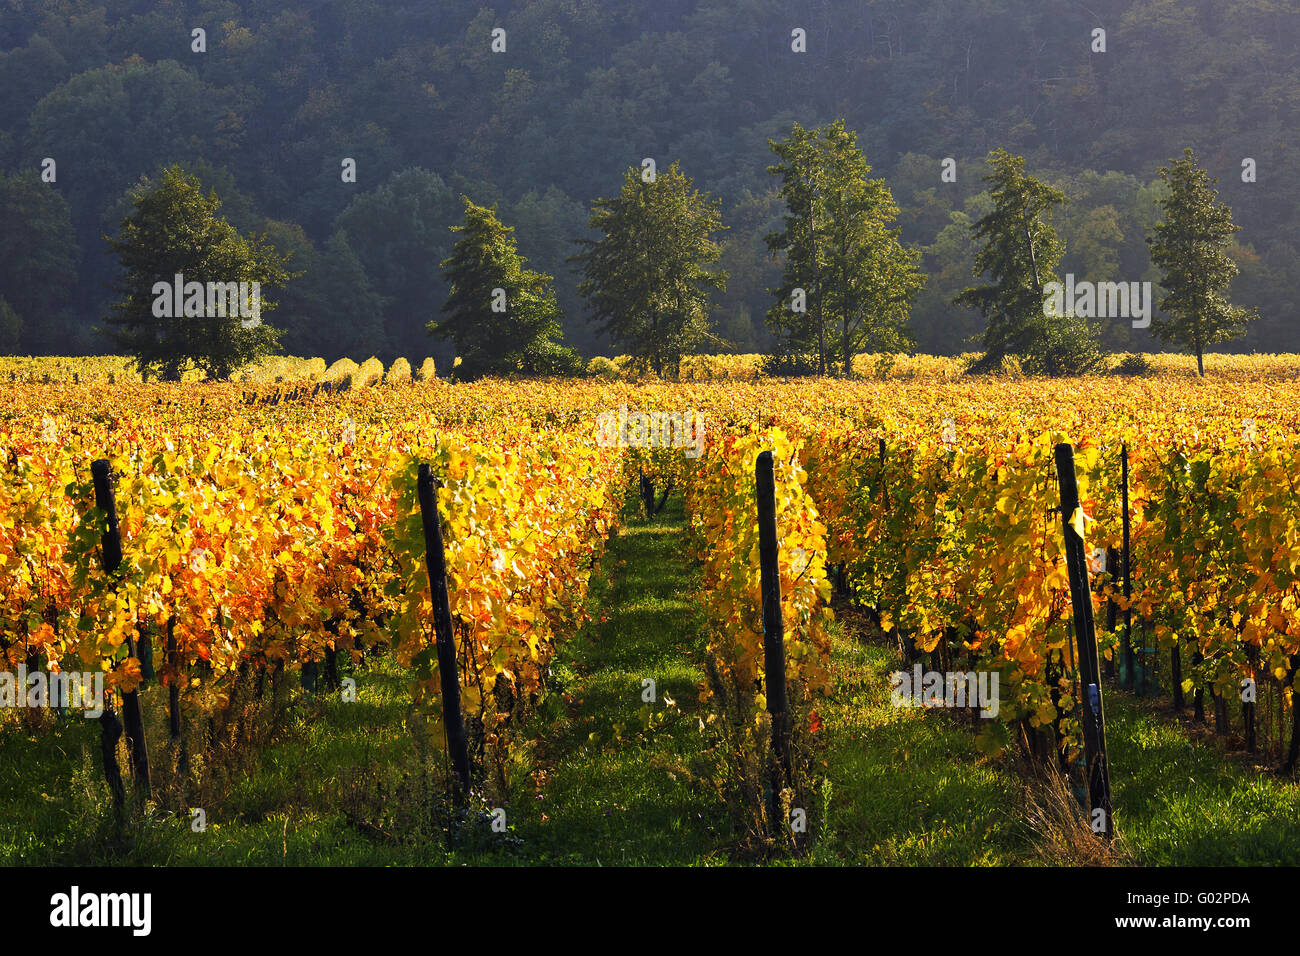 Vineyard and trees at Ammerschwihr, Alsace, France - Stock Image